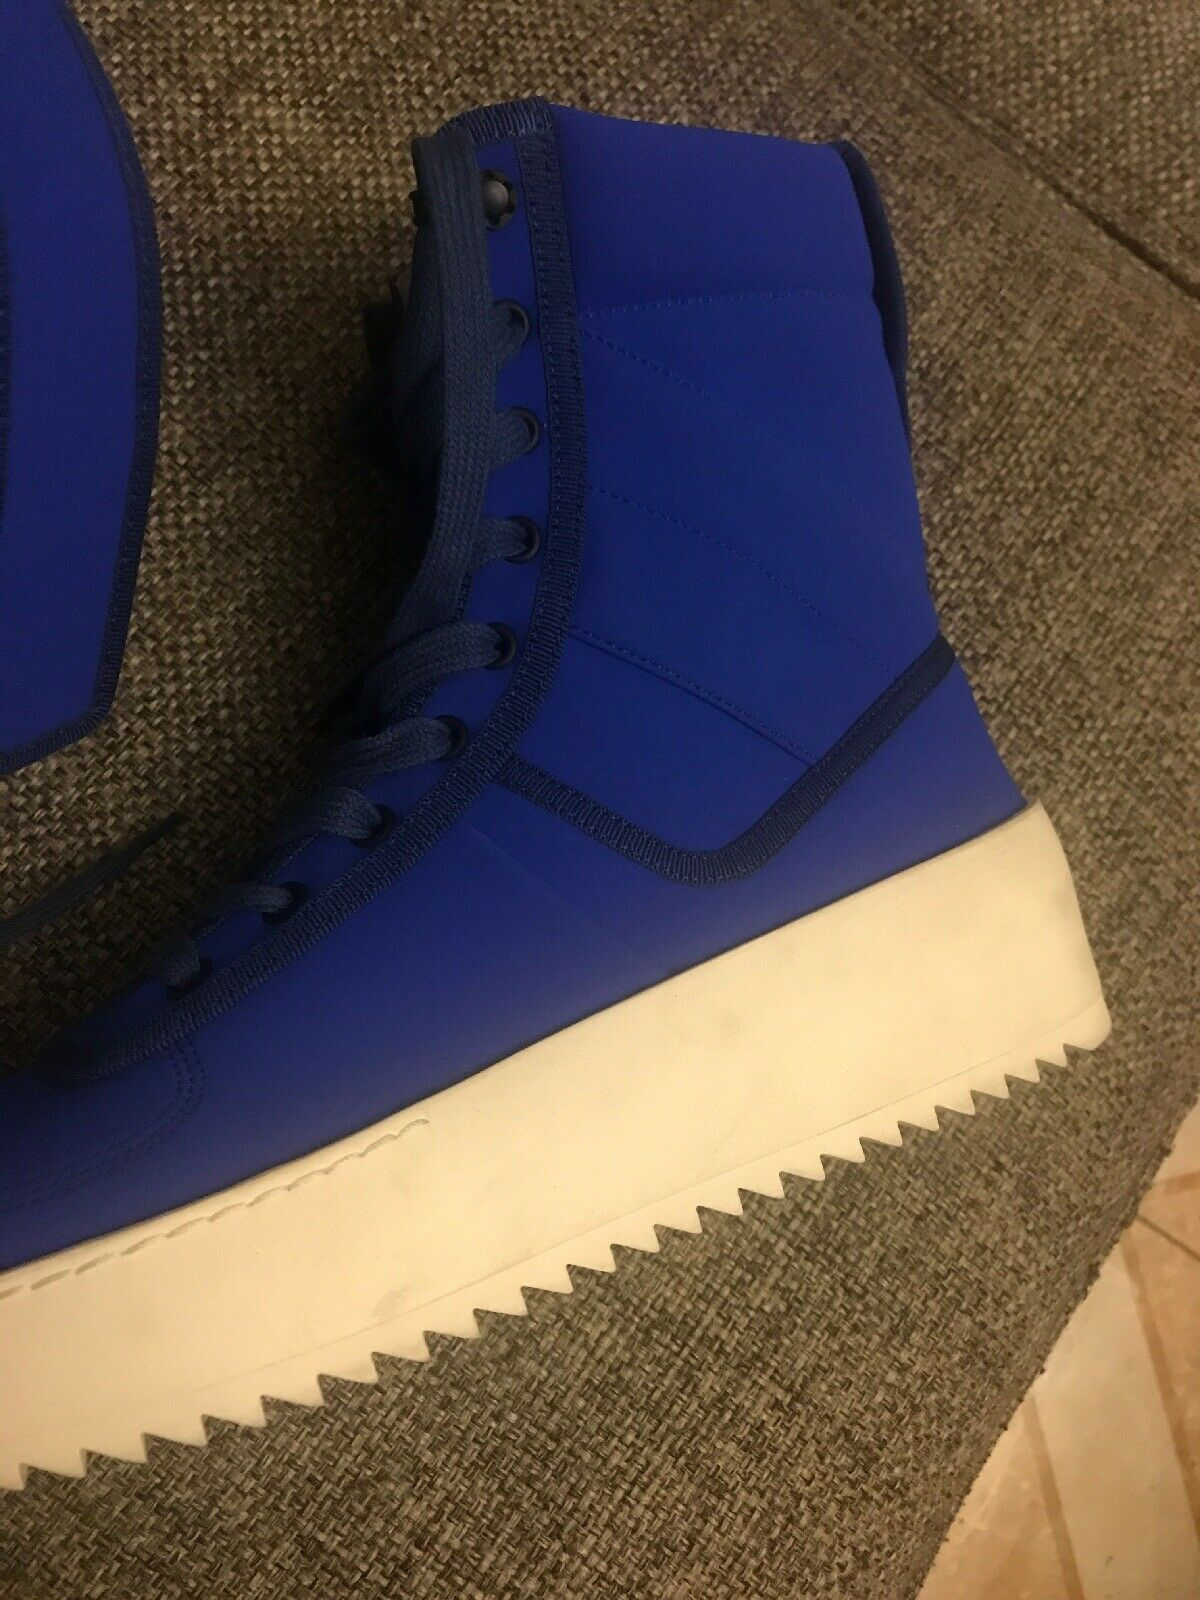 FEAR OF GOD 'Military Sneaker' Royal bluee Hi-Top Sneakers shoes 9 42 1200